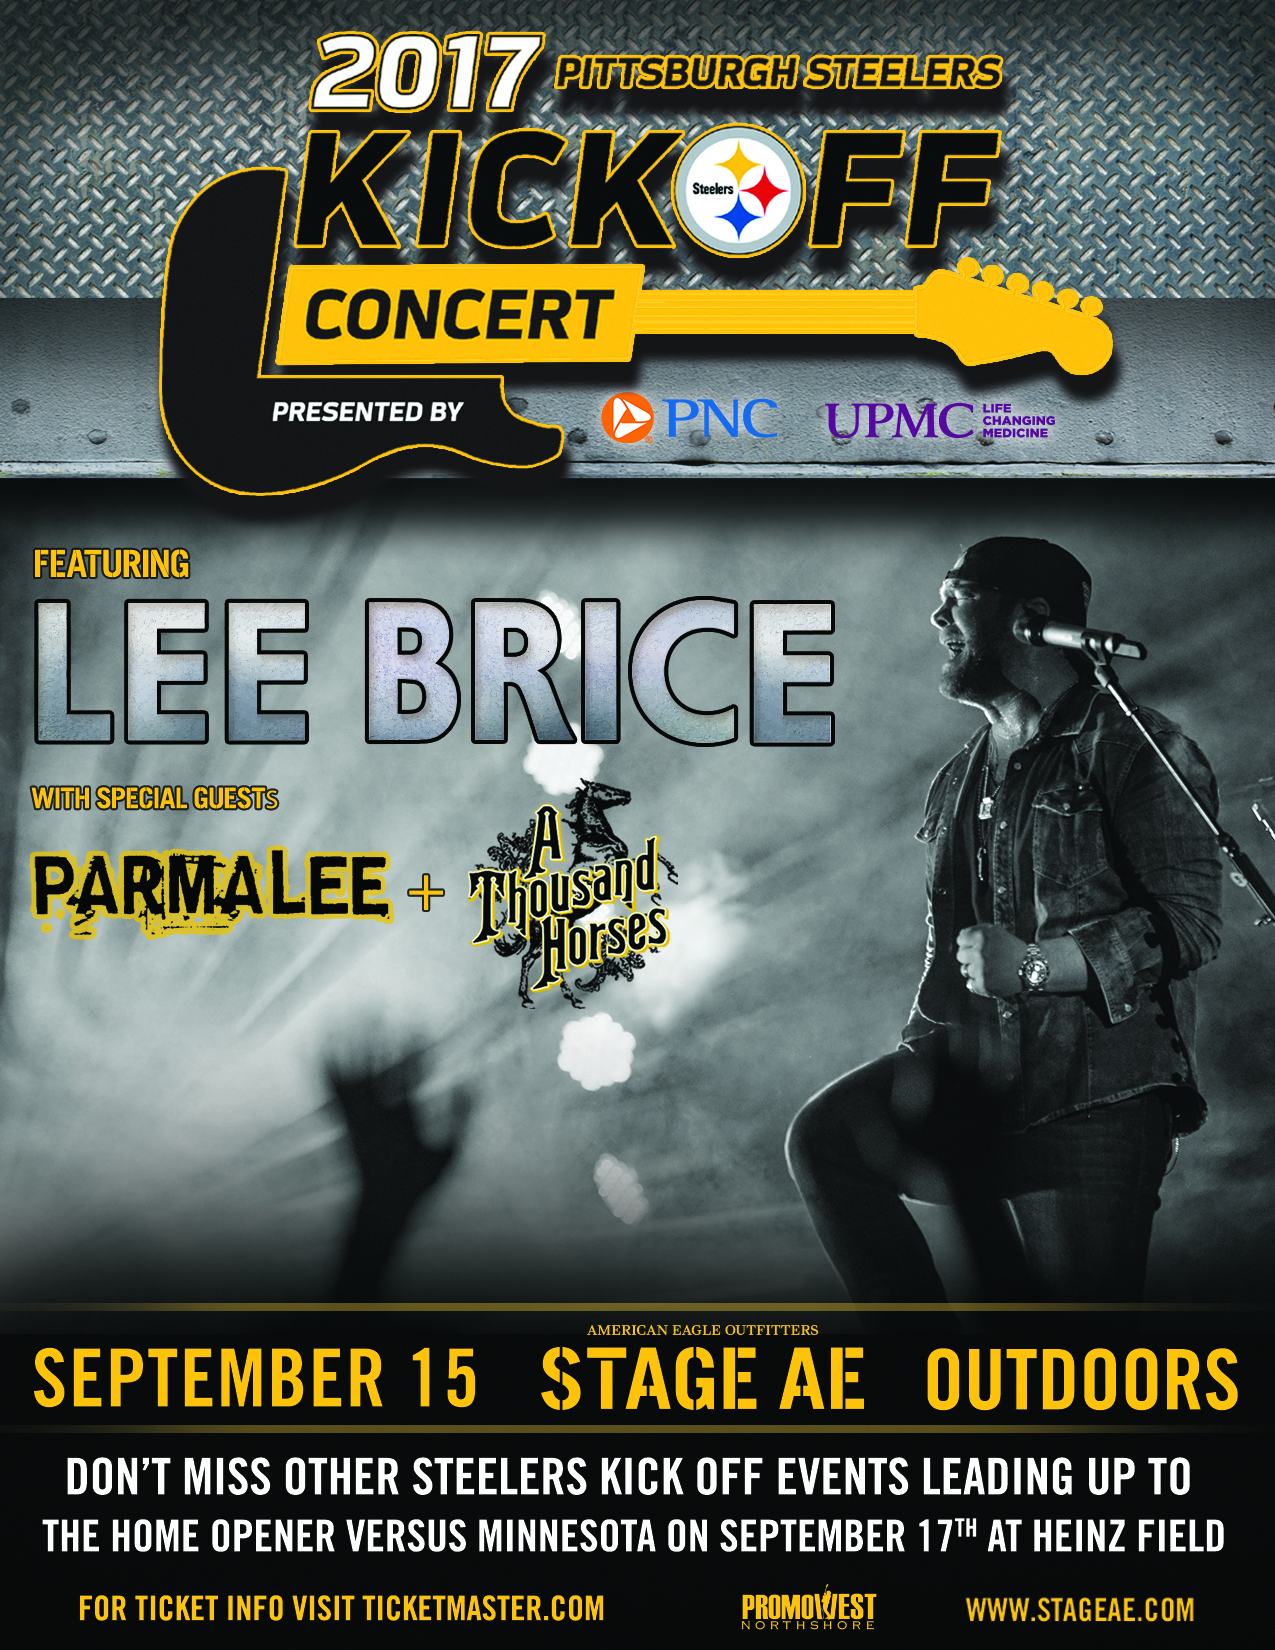 09_15_17_LeeBrice_SteelersKickoff_WebsiteExample.jpg